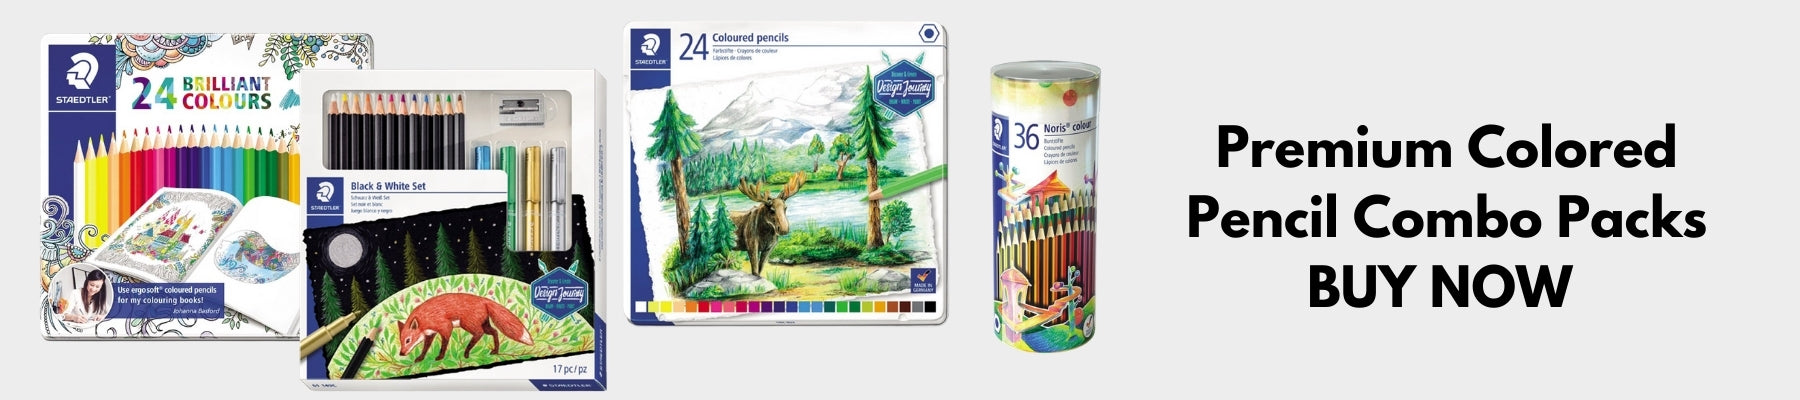 Buy premium color pencil combo packs for best price in Abu Dhabi, Dubai - UAE | Faber Castell, Staedtler Pigmented Color Pencils for Art Drawing from najmaonline.com